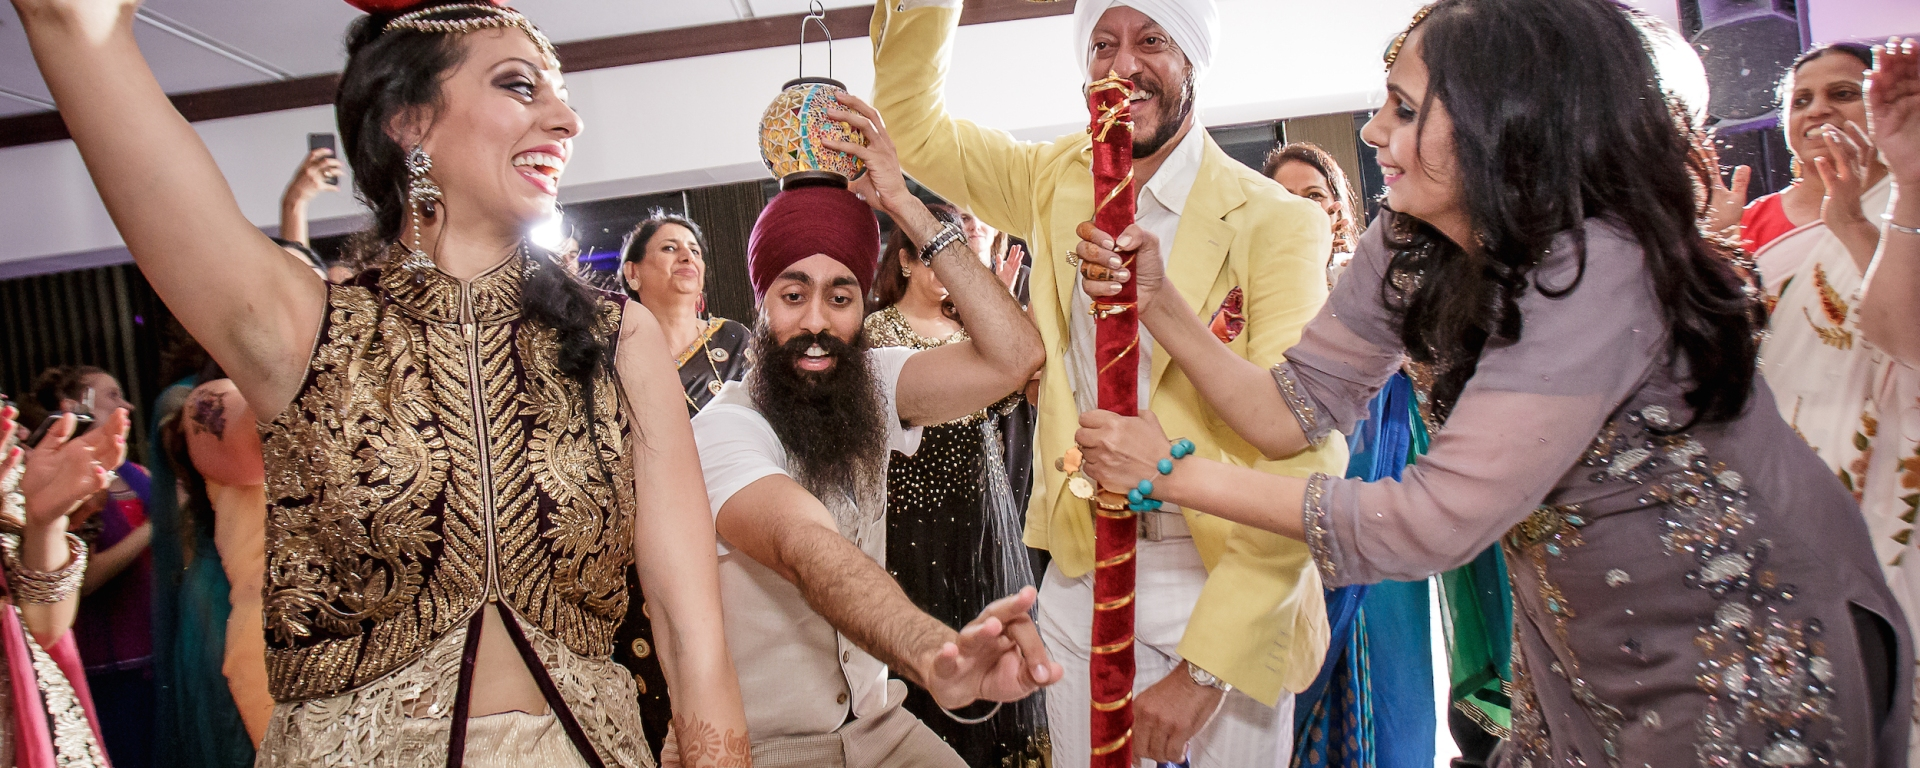 Jaggo at Punjabi Weddings – Indian Wedding Venues: Southern